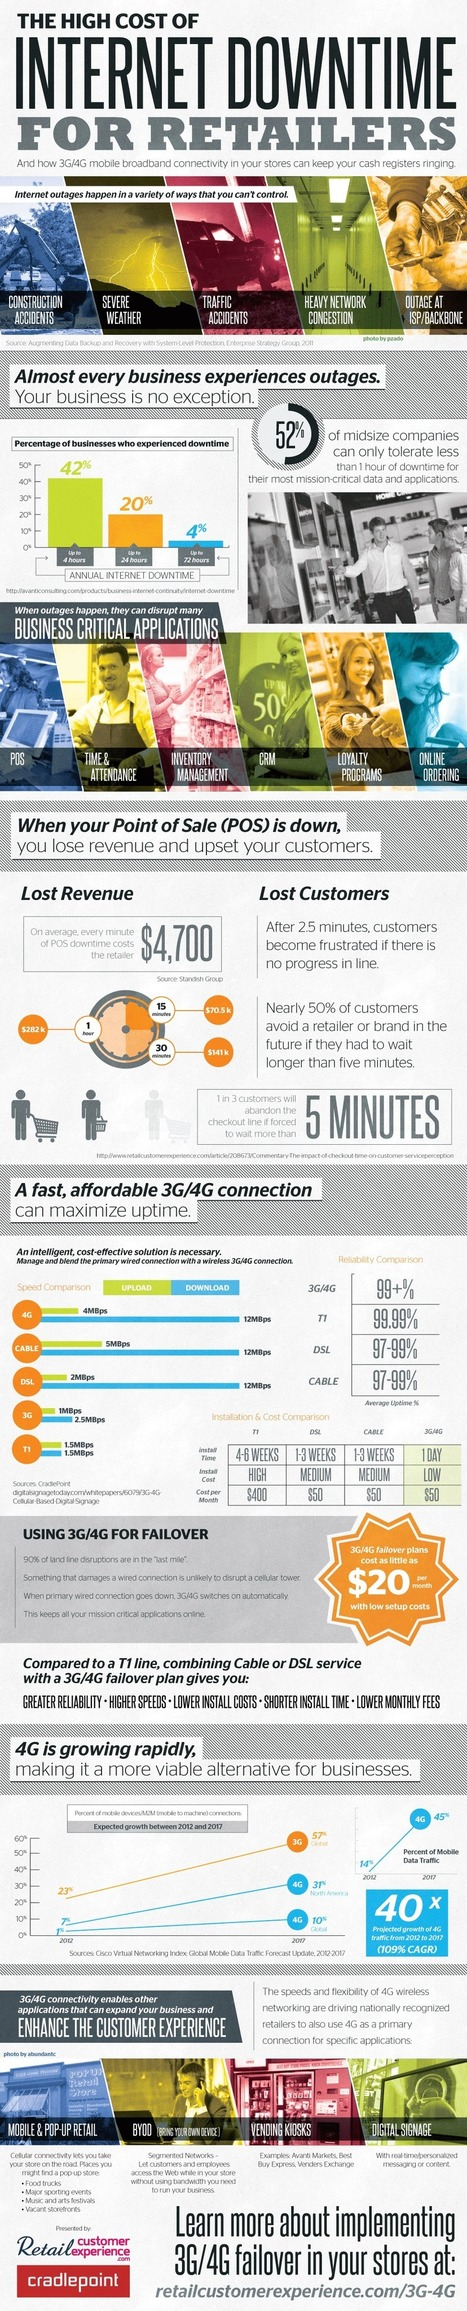 Beating Internet Downtime: Keep Your Cash Registers Ringing [Infographic] - Business 2 Community | Business Industry Infographics | Scoop.it